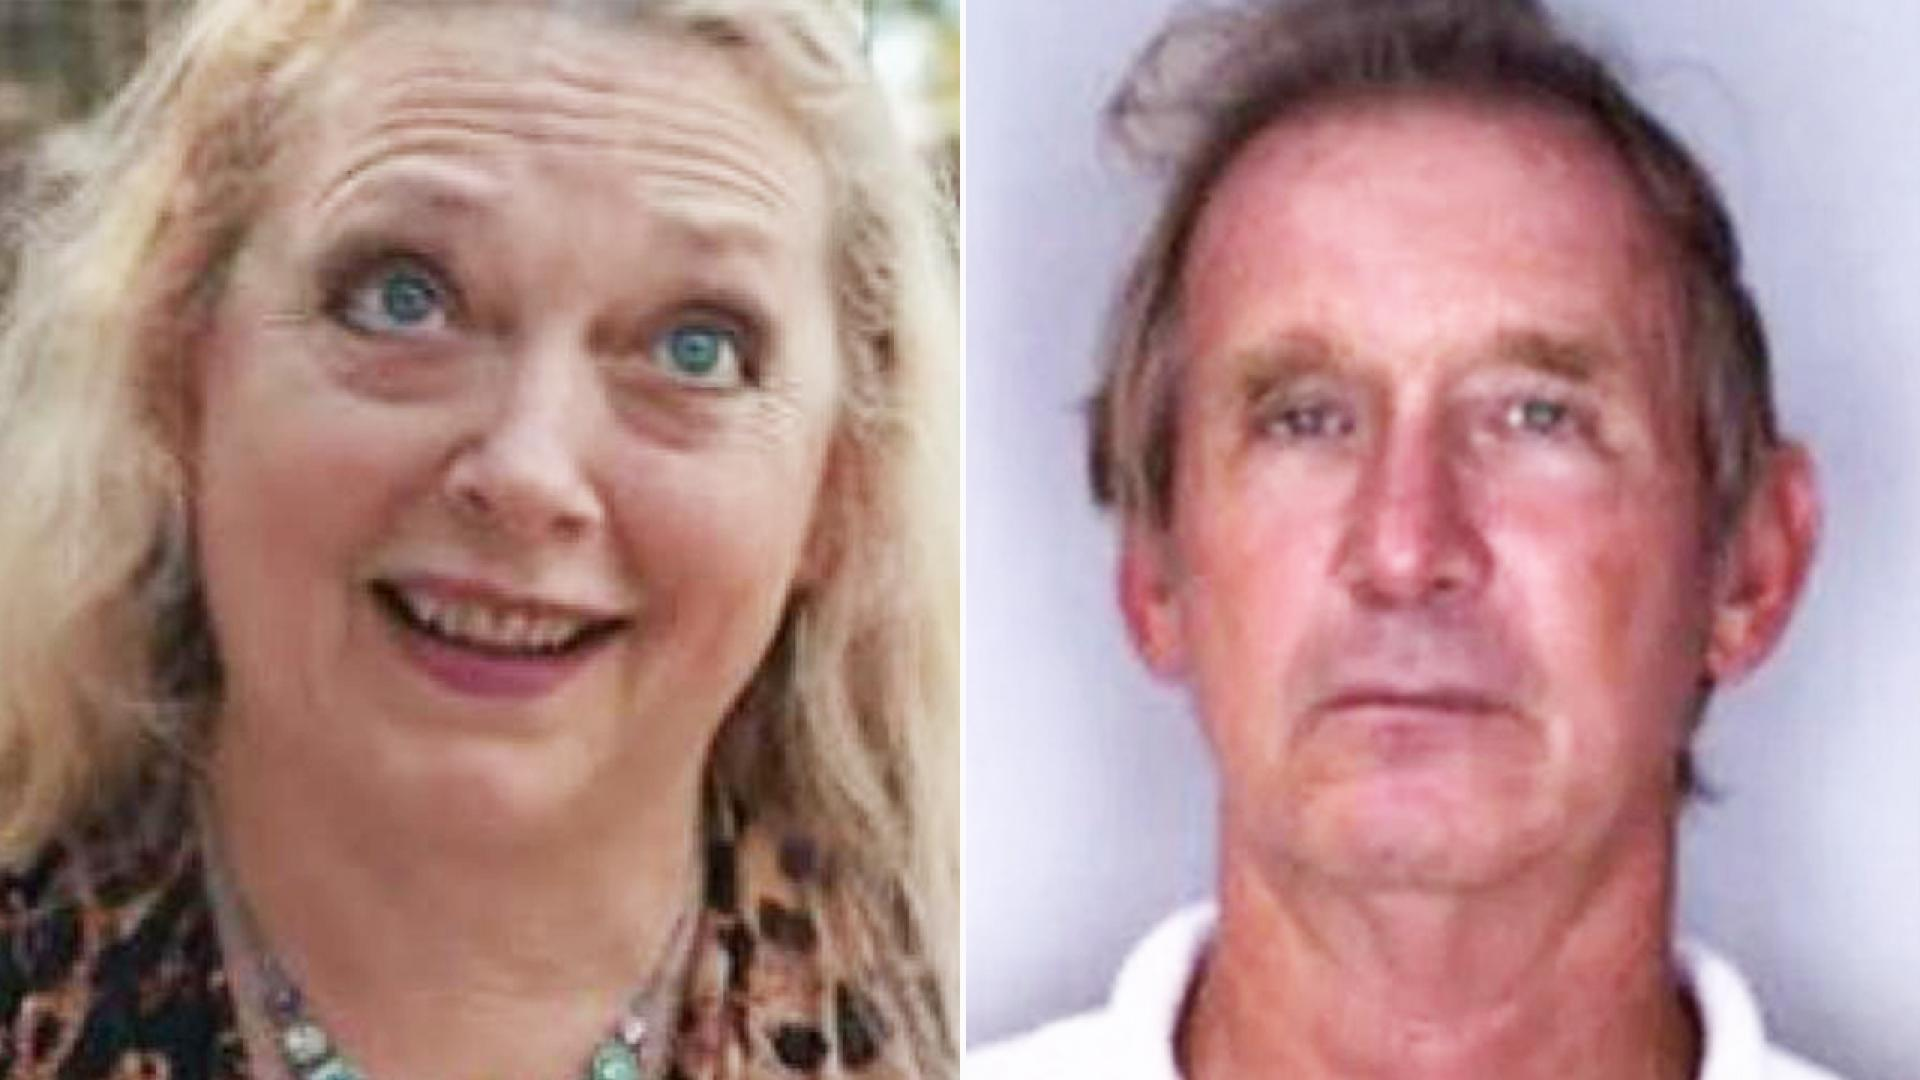 Carole Baskin, left, has previously denied any involvement with the disappearence of her millionaire second husband, Don Lewis, right.